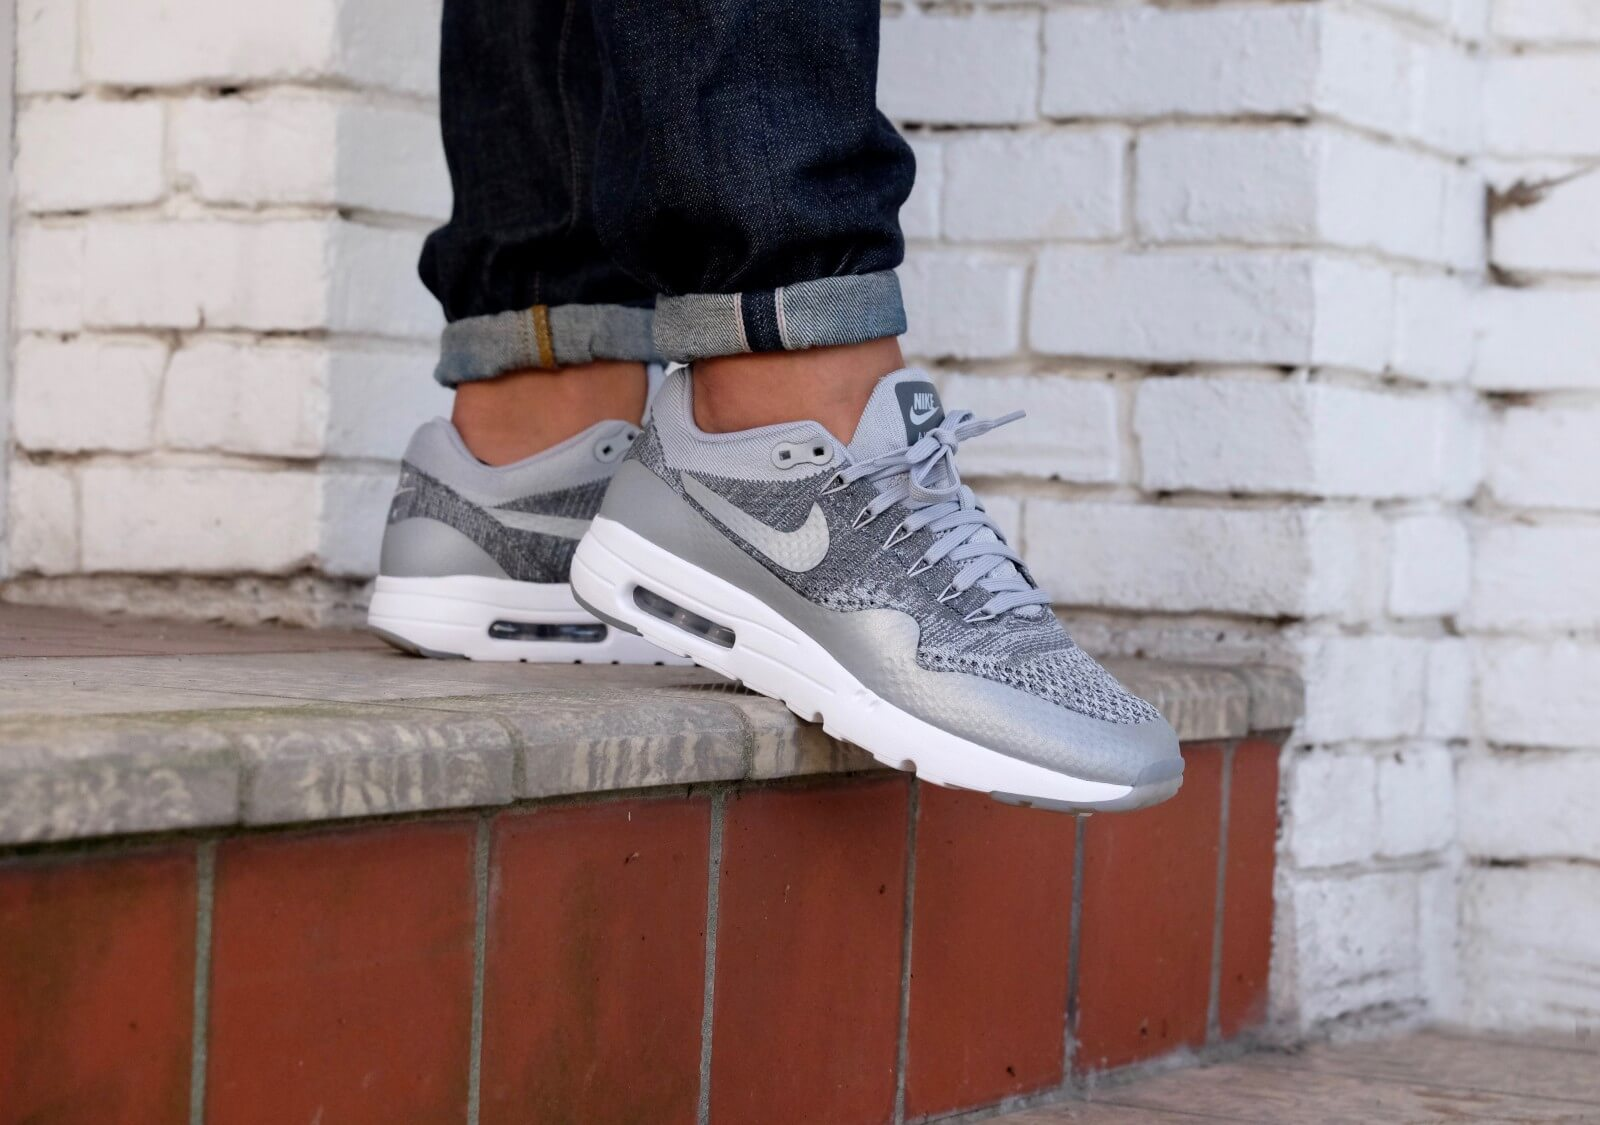 Nike Air Max 1 Ultra Flyknit Wolf Grey Dark Grey White 843384 001